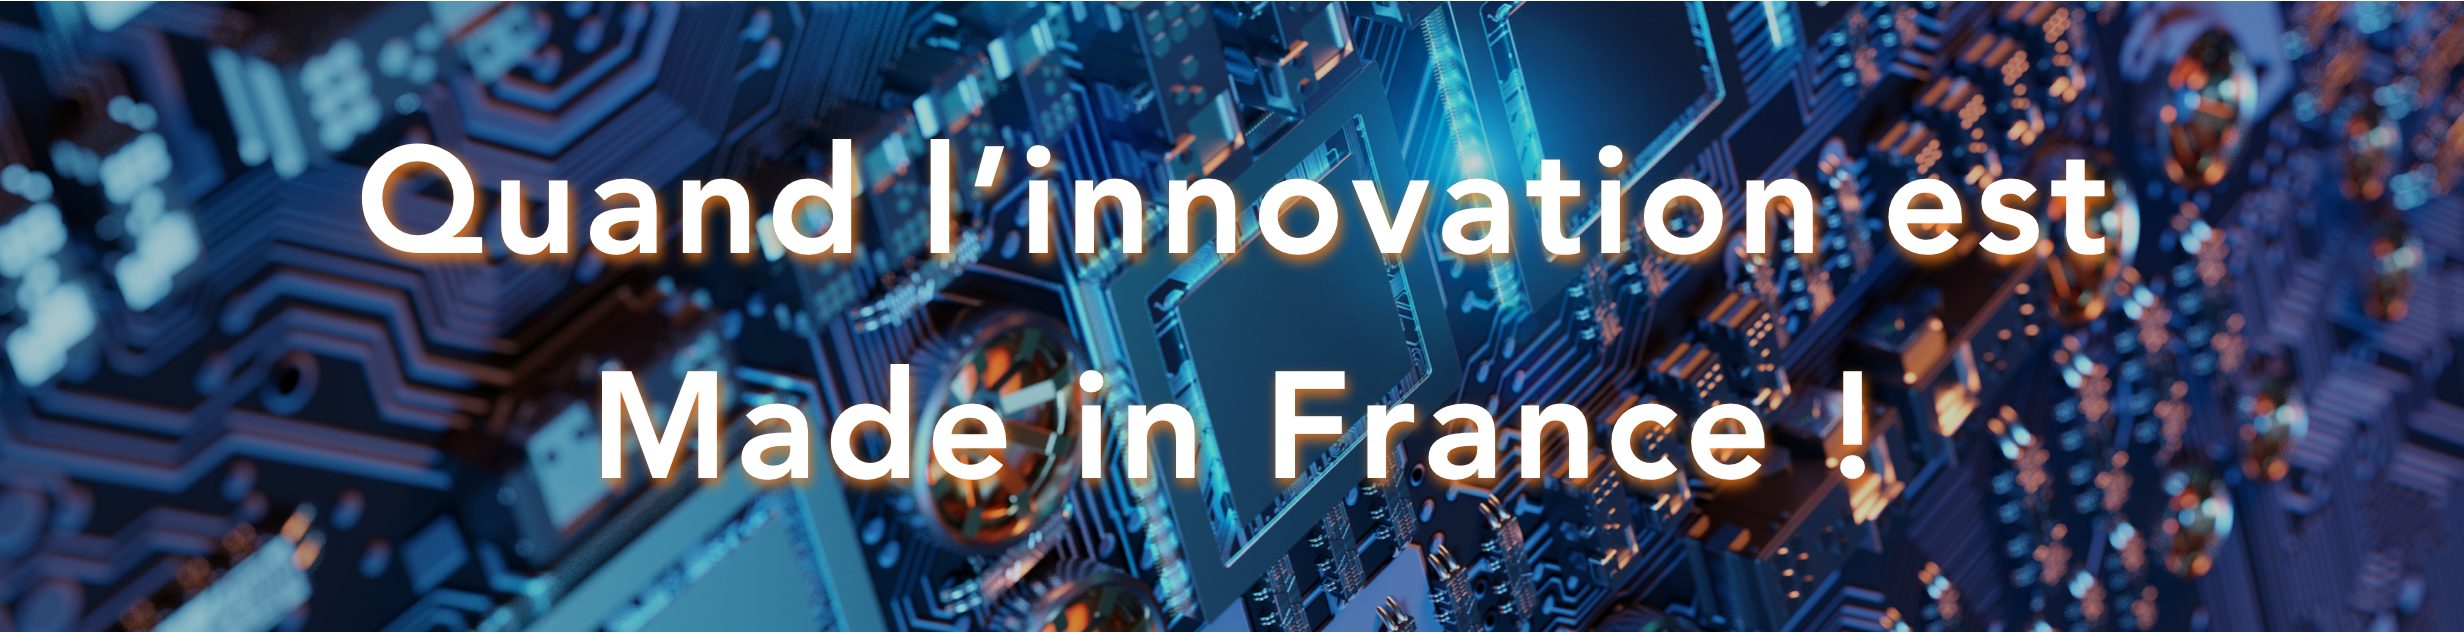 Quand l'innovation est Made in France